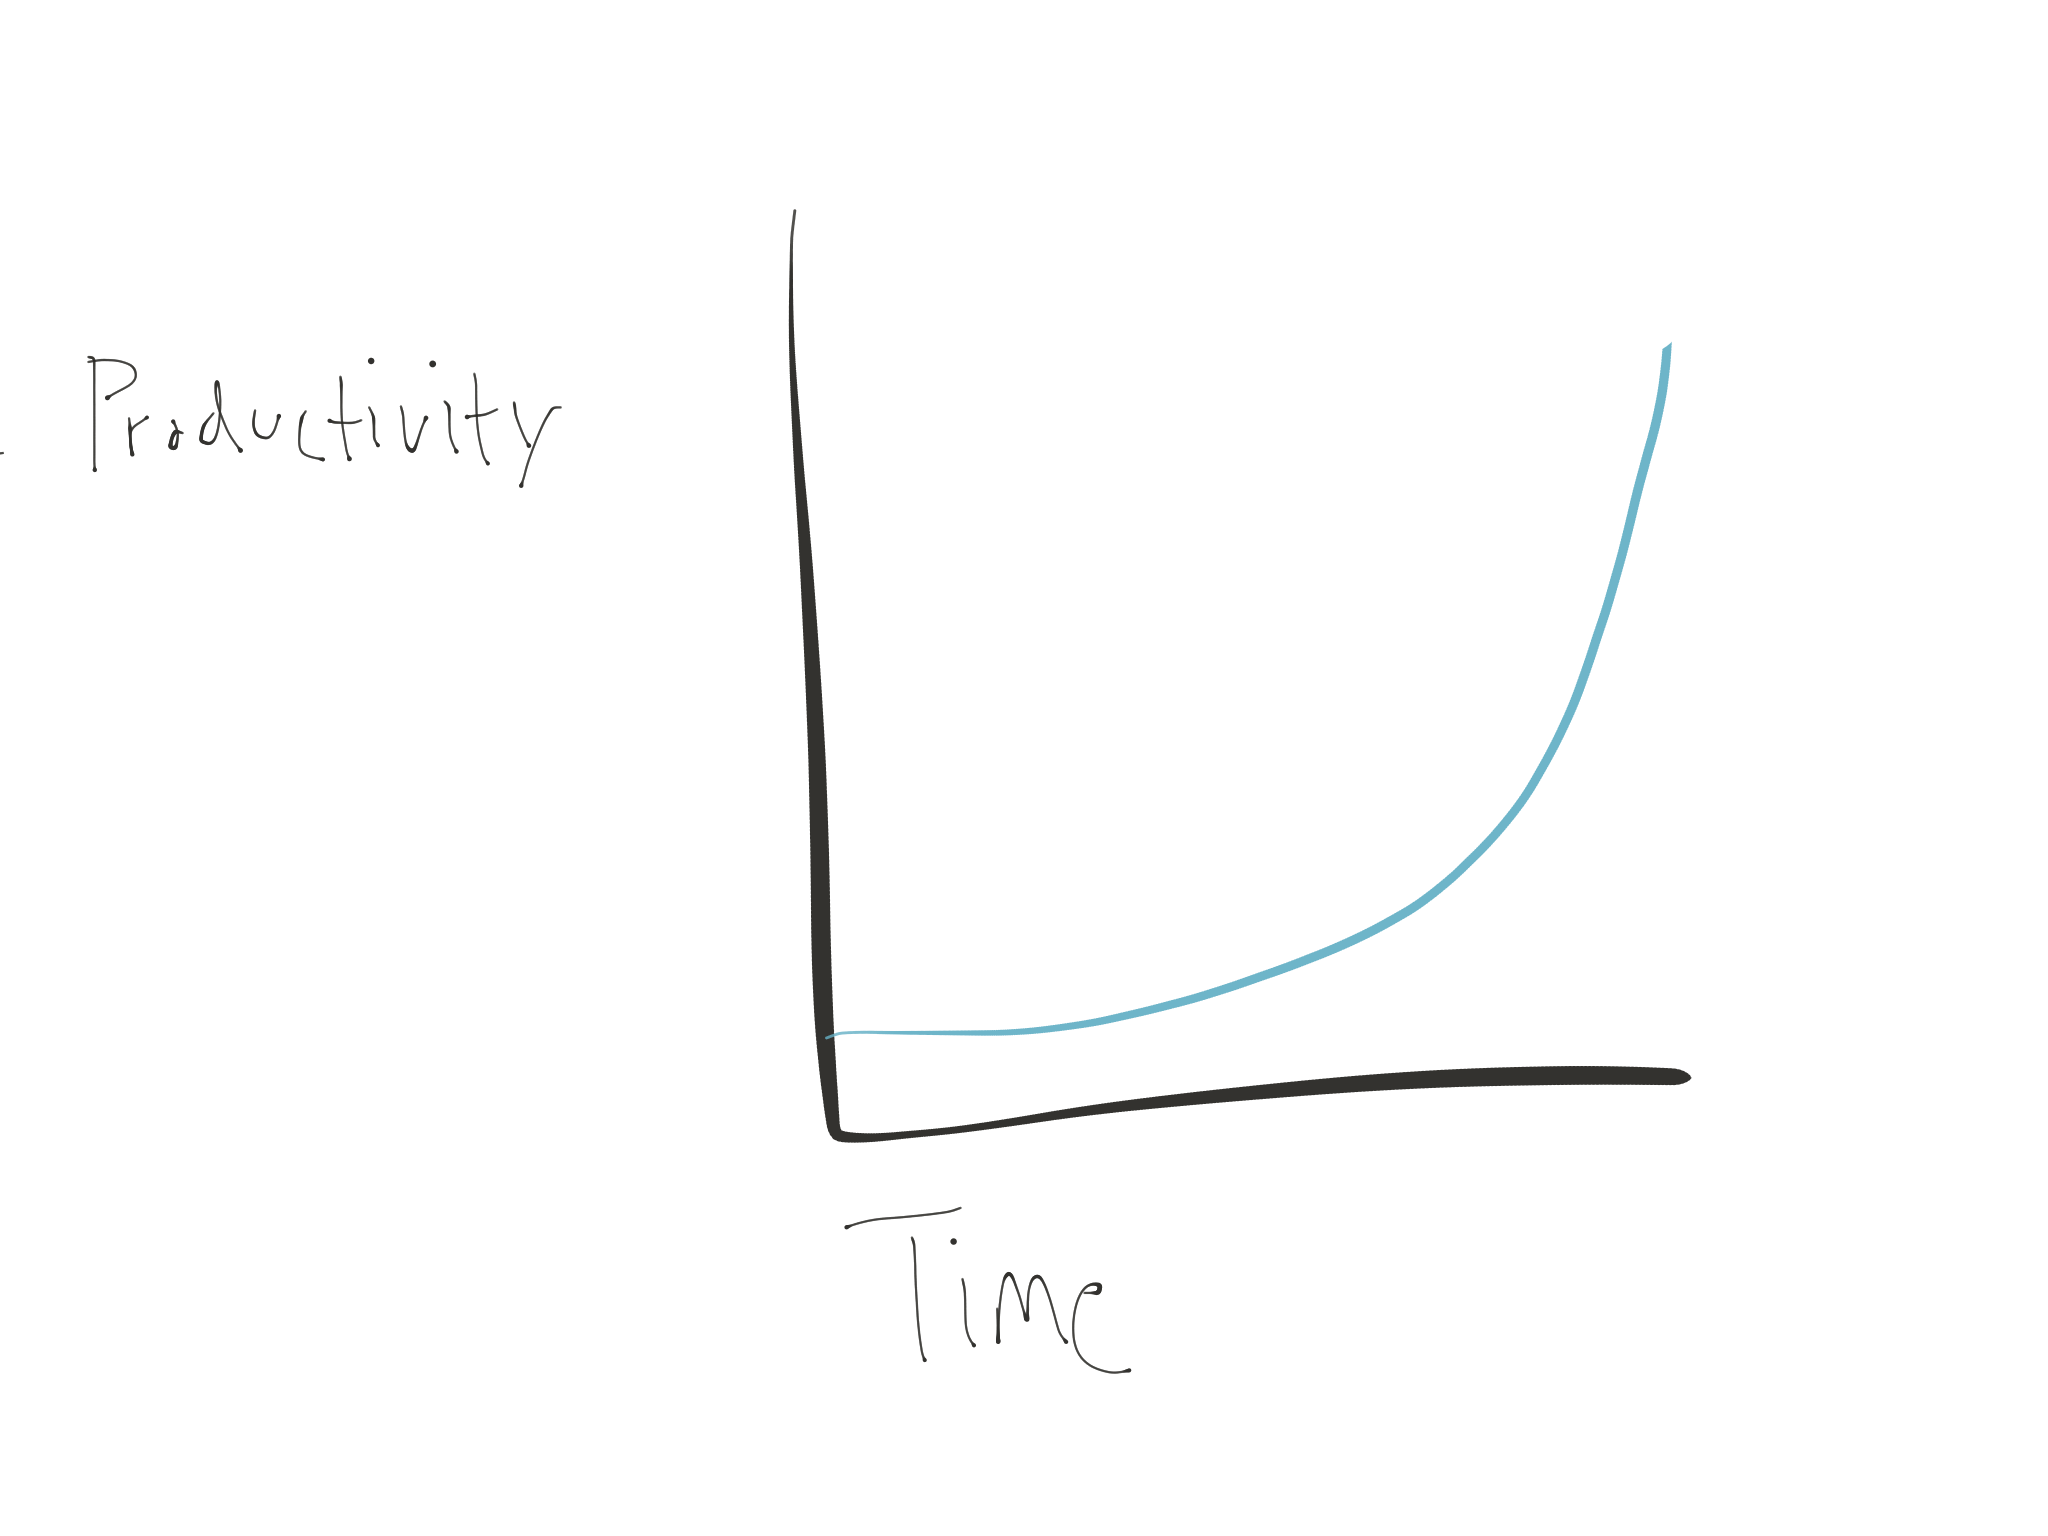 graph of the increasing productivity over time